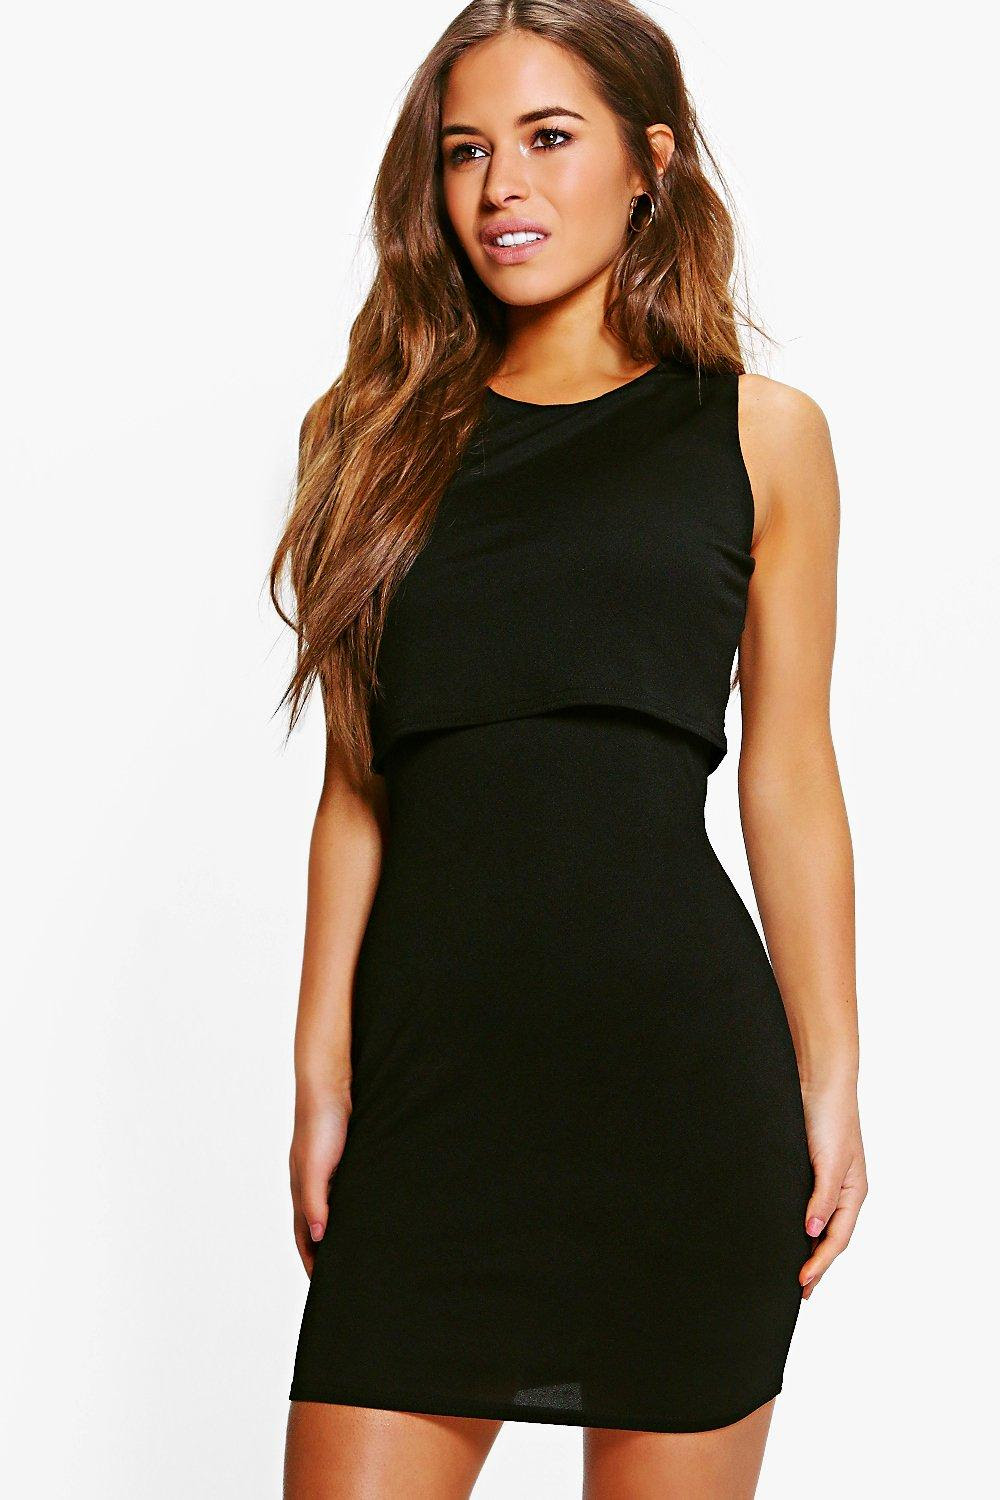 Jet bodycon dress is a in spanish what sizes